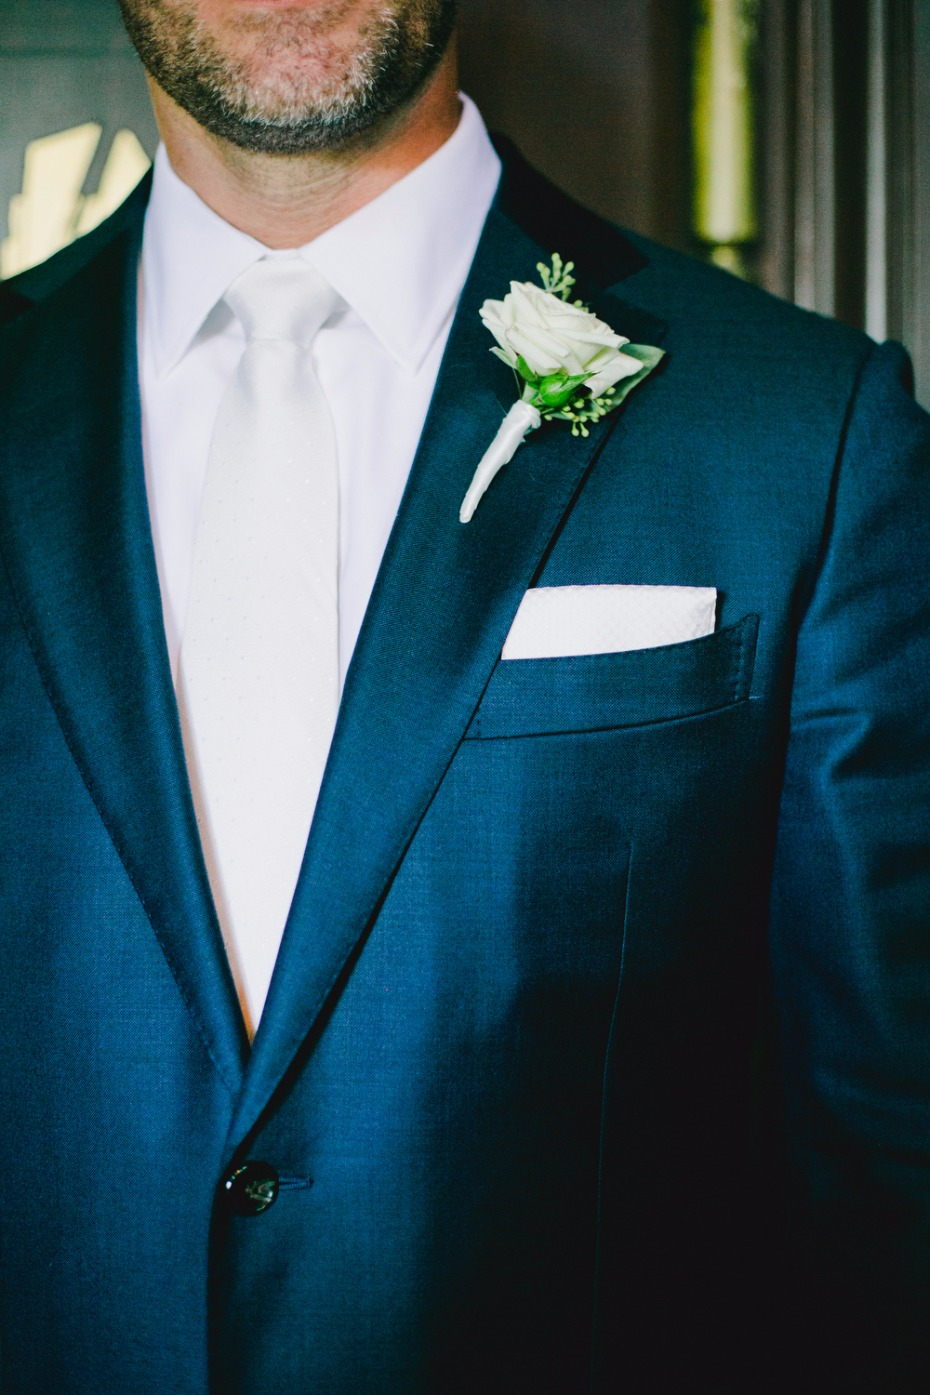 groom styled in blue suite white tie and white boutonniere